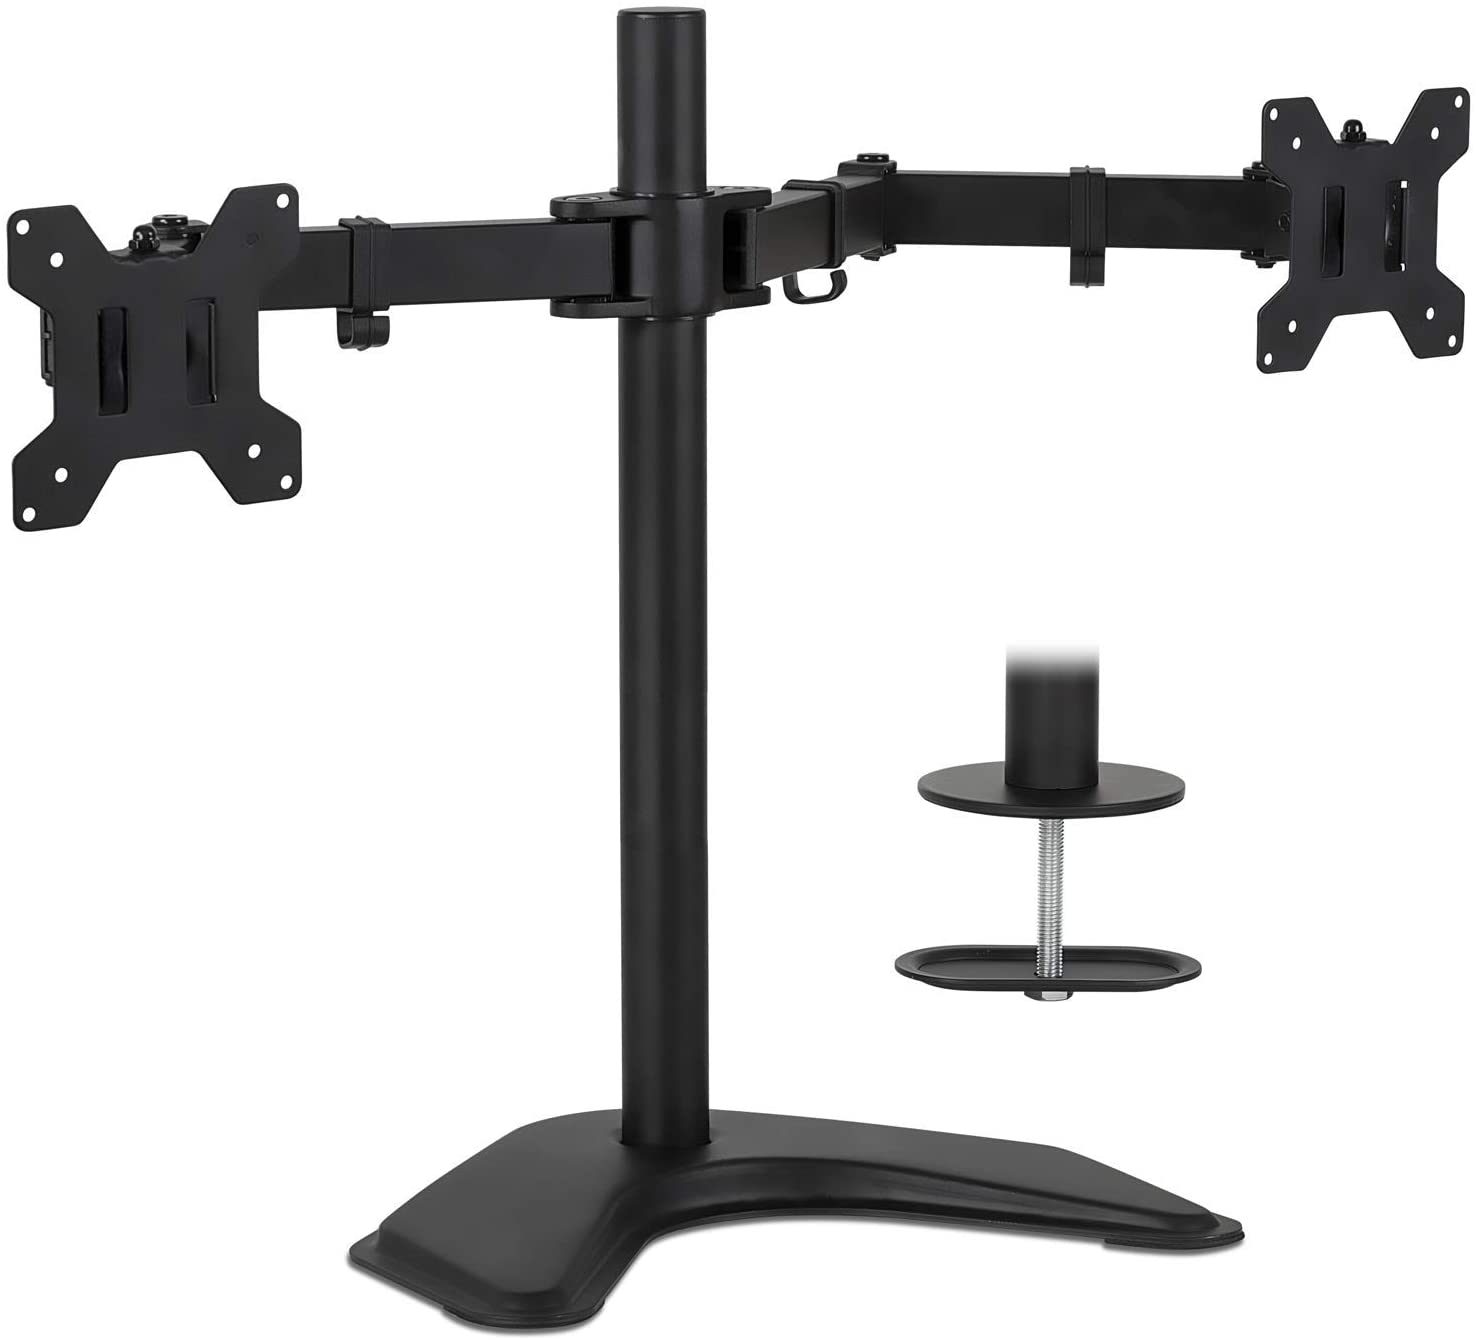 Mount-It! Dual Monitor Stand | 2 Monitor Mount Fits 19 20 21.5 24 27 29 32 Inch Computer Screens | Free Standing and Grommet Bases | Two Heavy Duty Tilt Swivel Height Adjustable Arms | VESA Compatible